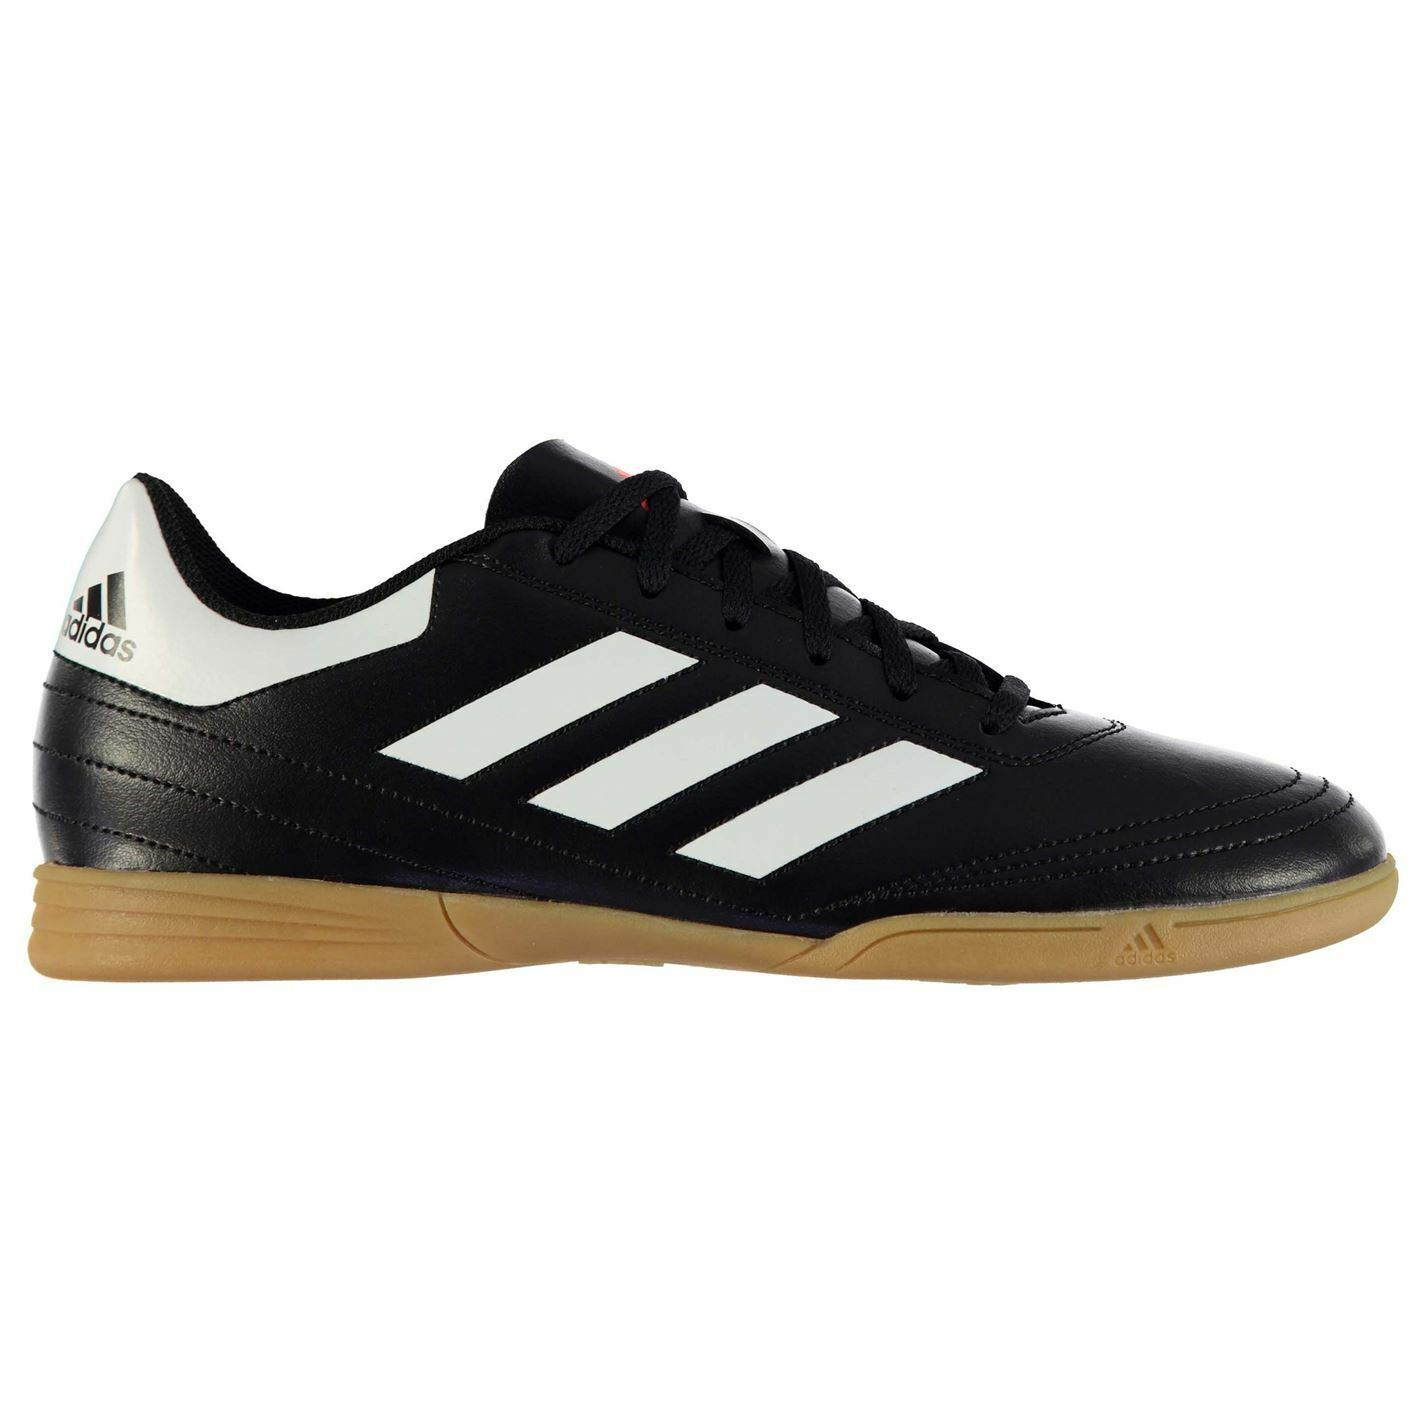 Adidas Goletto Indoor Trainers Mens Bk Wh Football Soccer Fusbal shoes Sneakers